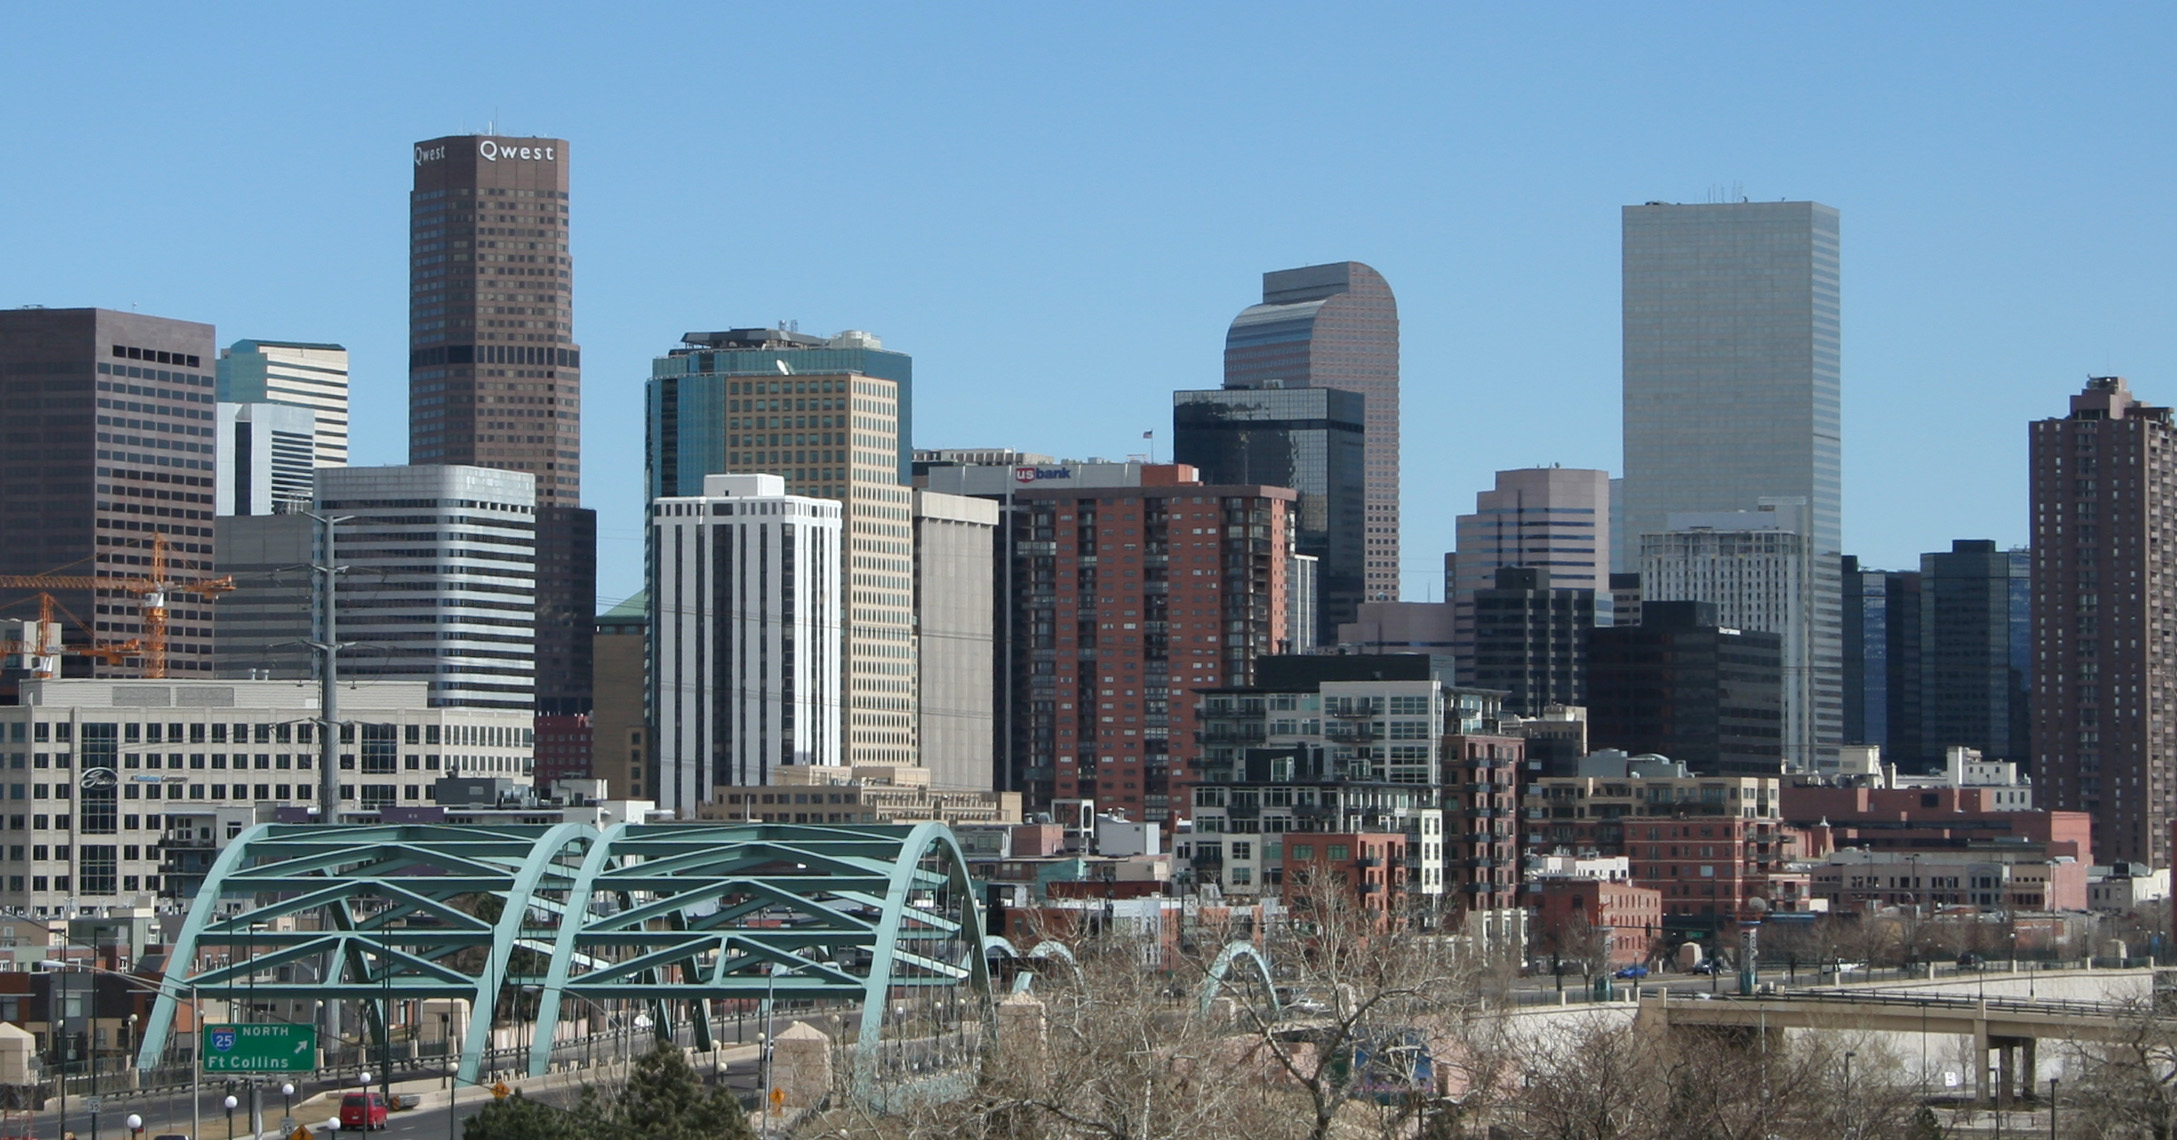 File:2006-03-26 Denver Skyline I-25 Speer.jpg